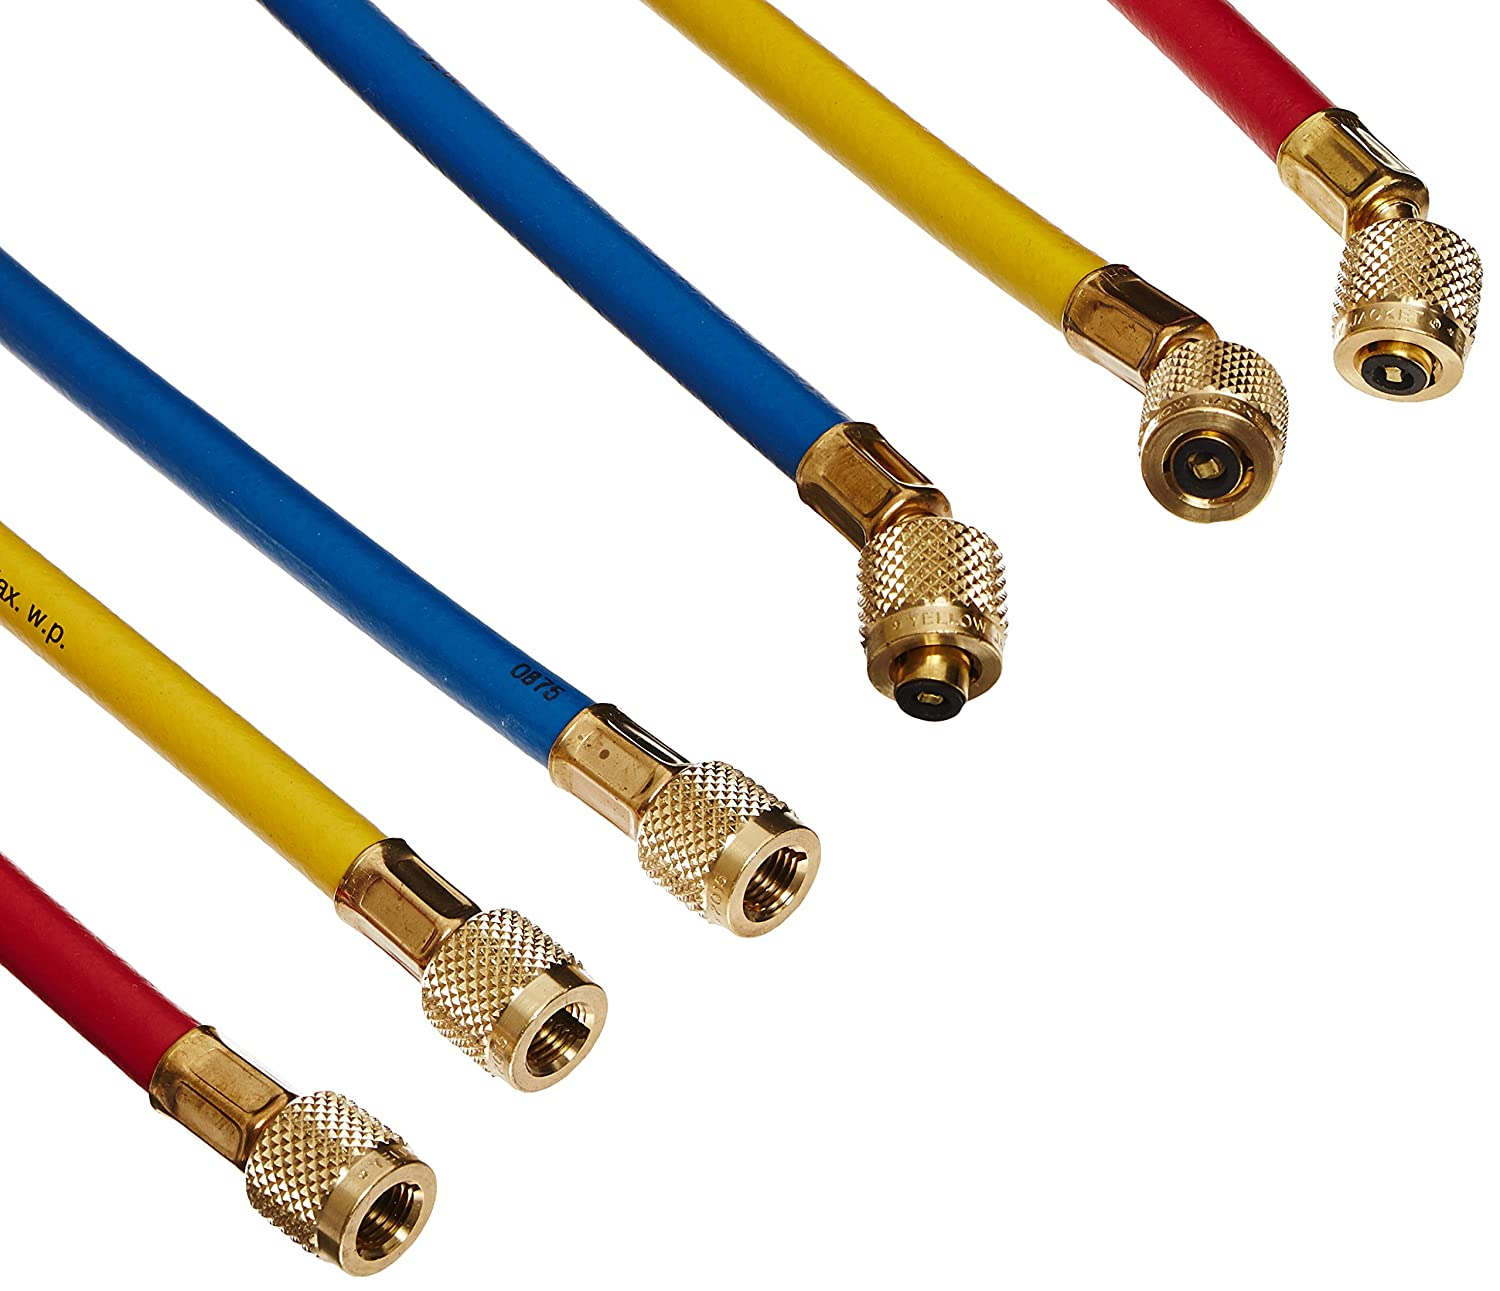 """Yellow Jacket 21985 Plus II Hose Standard 1/4"""" Flare Fittings, 60"""", Red/Yellow/Blue (Pack of 3): Industrial Hvac Components: Industrial & Scientific"""